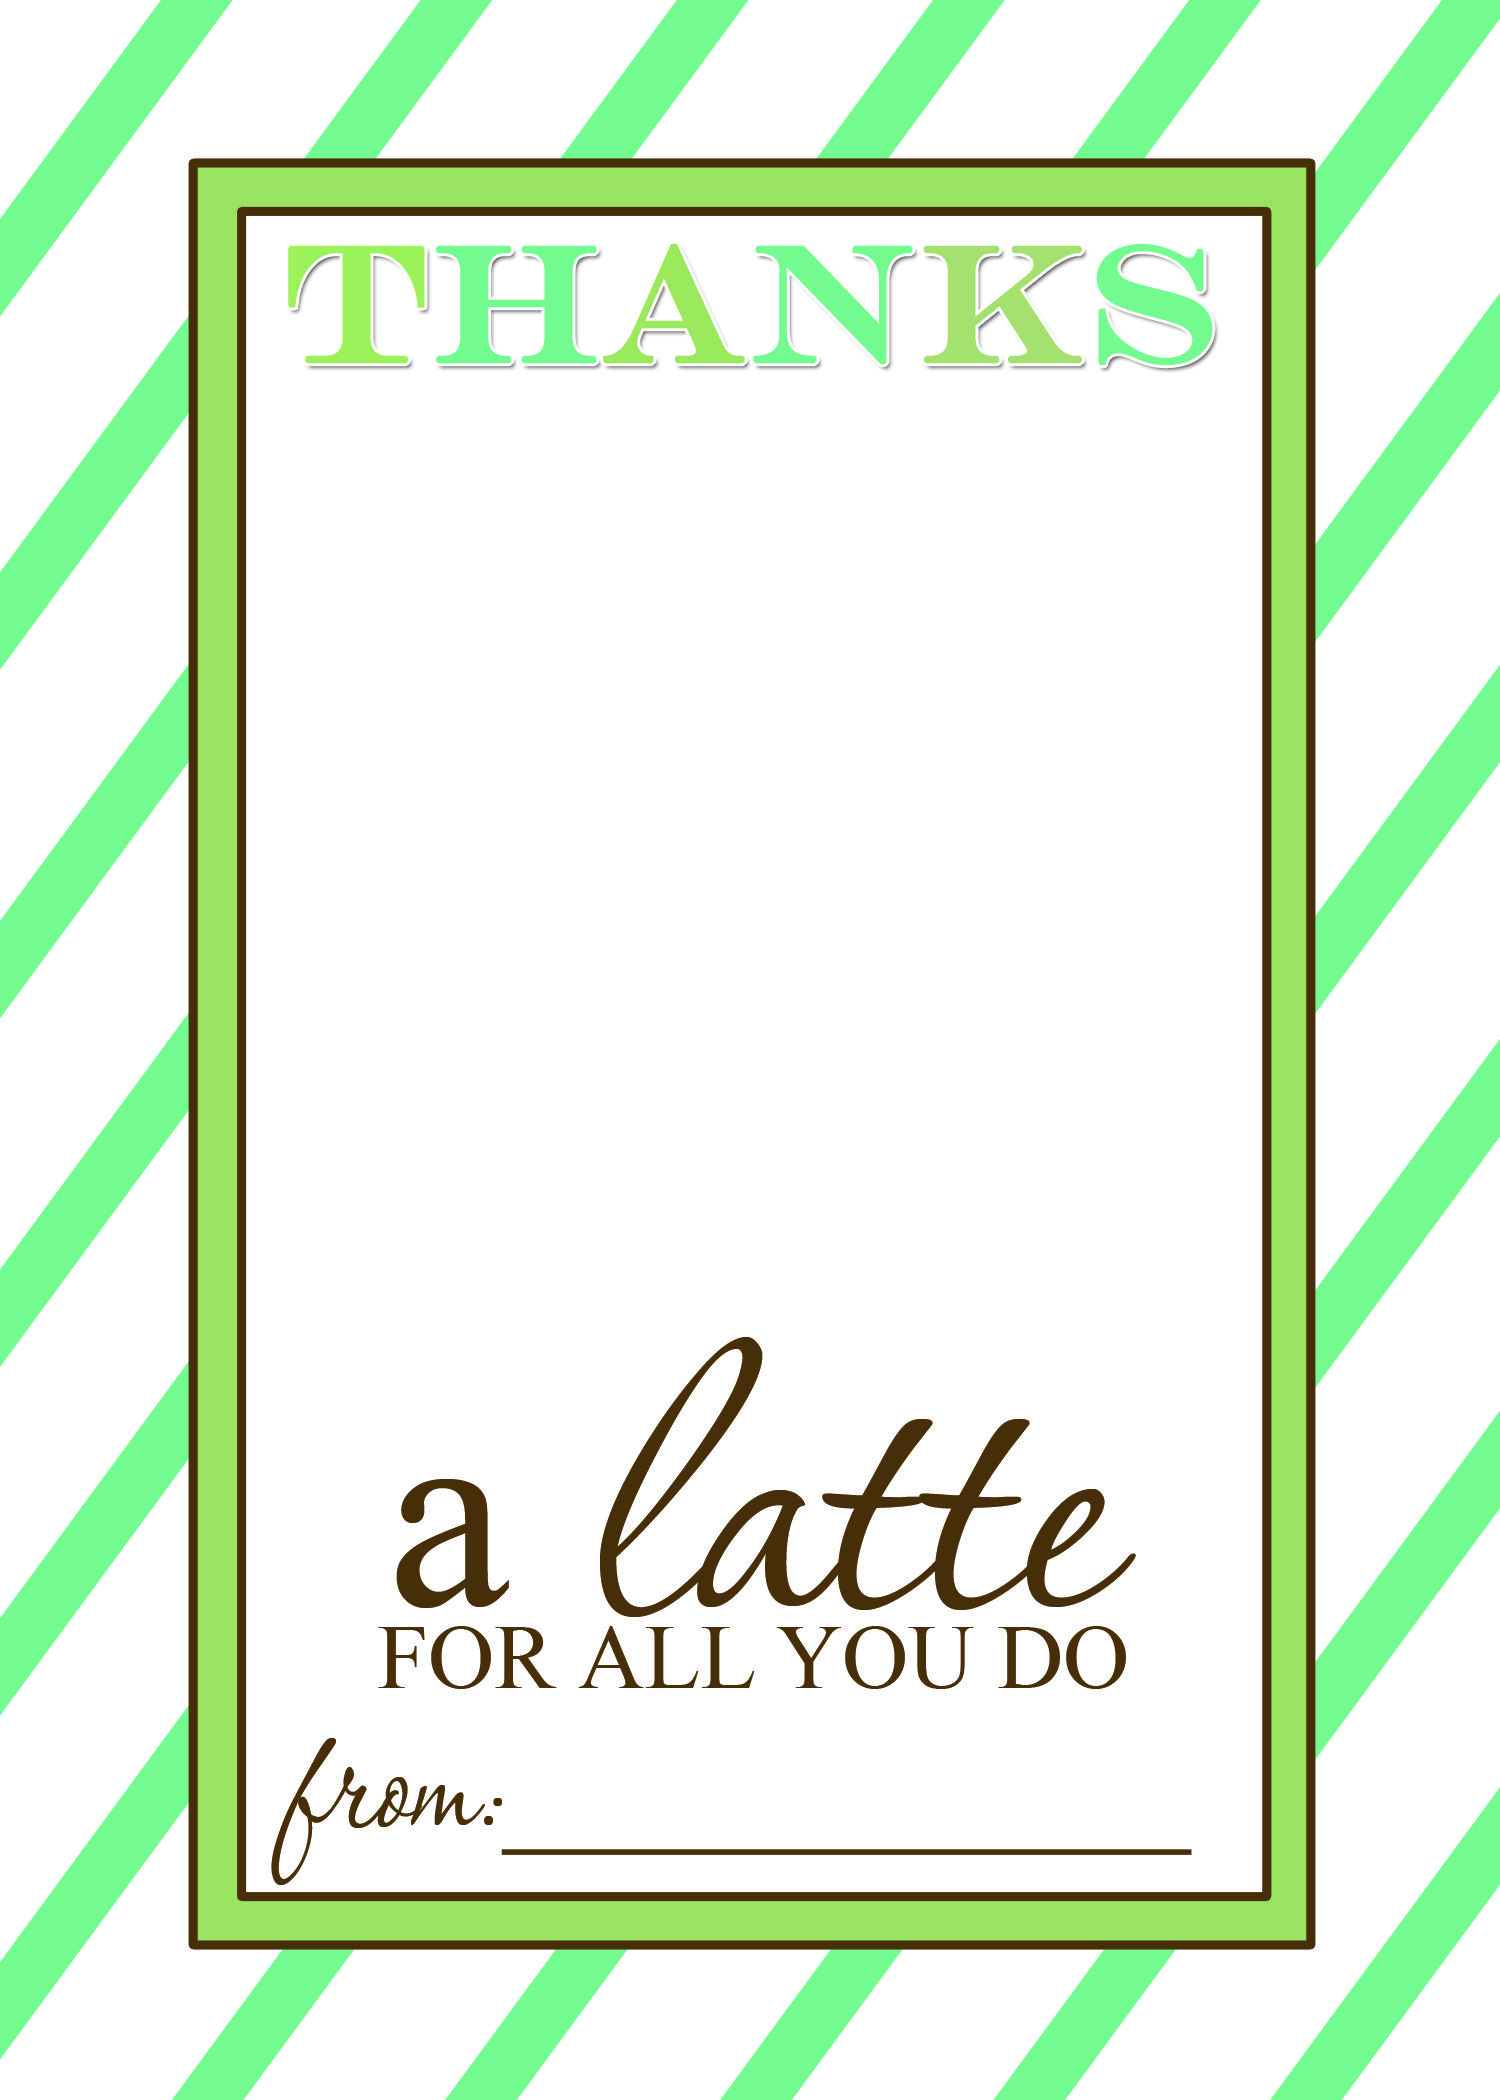 Thanks A Latte Free Printable Gift Card Holder Teacher Gift | Craft - Thanks A Latte Free Printable Gift Tag